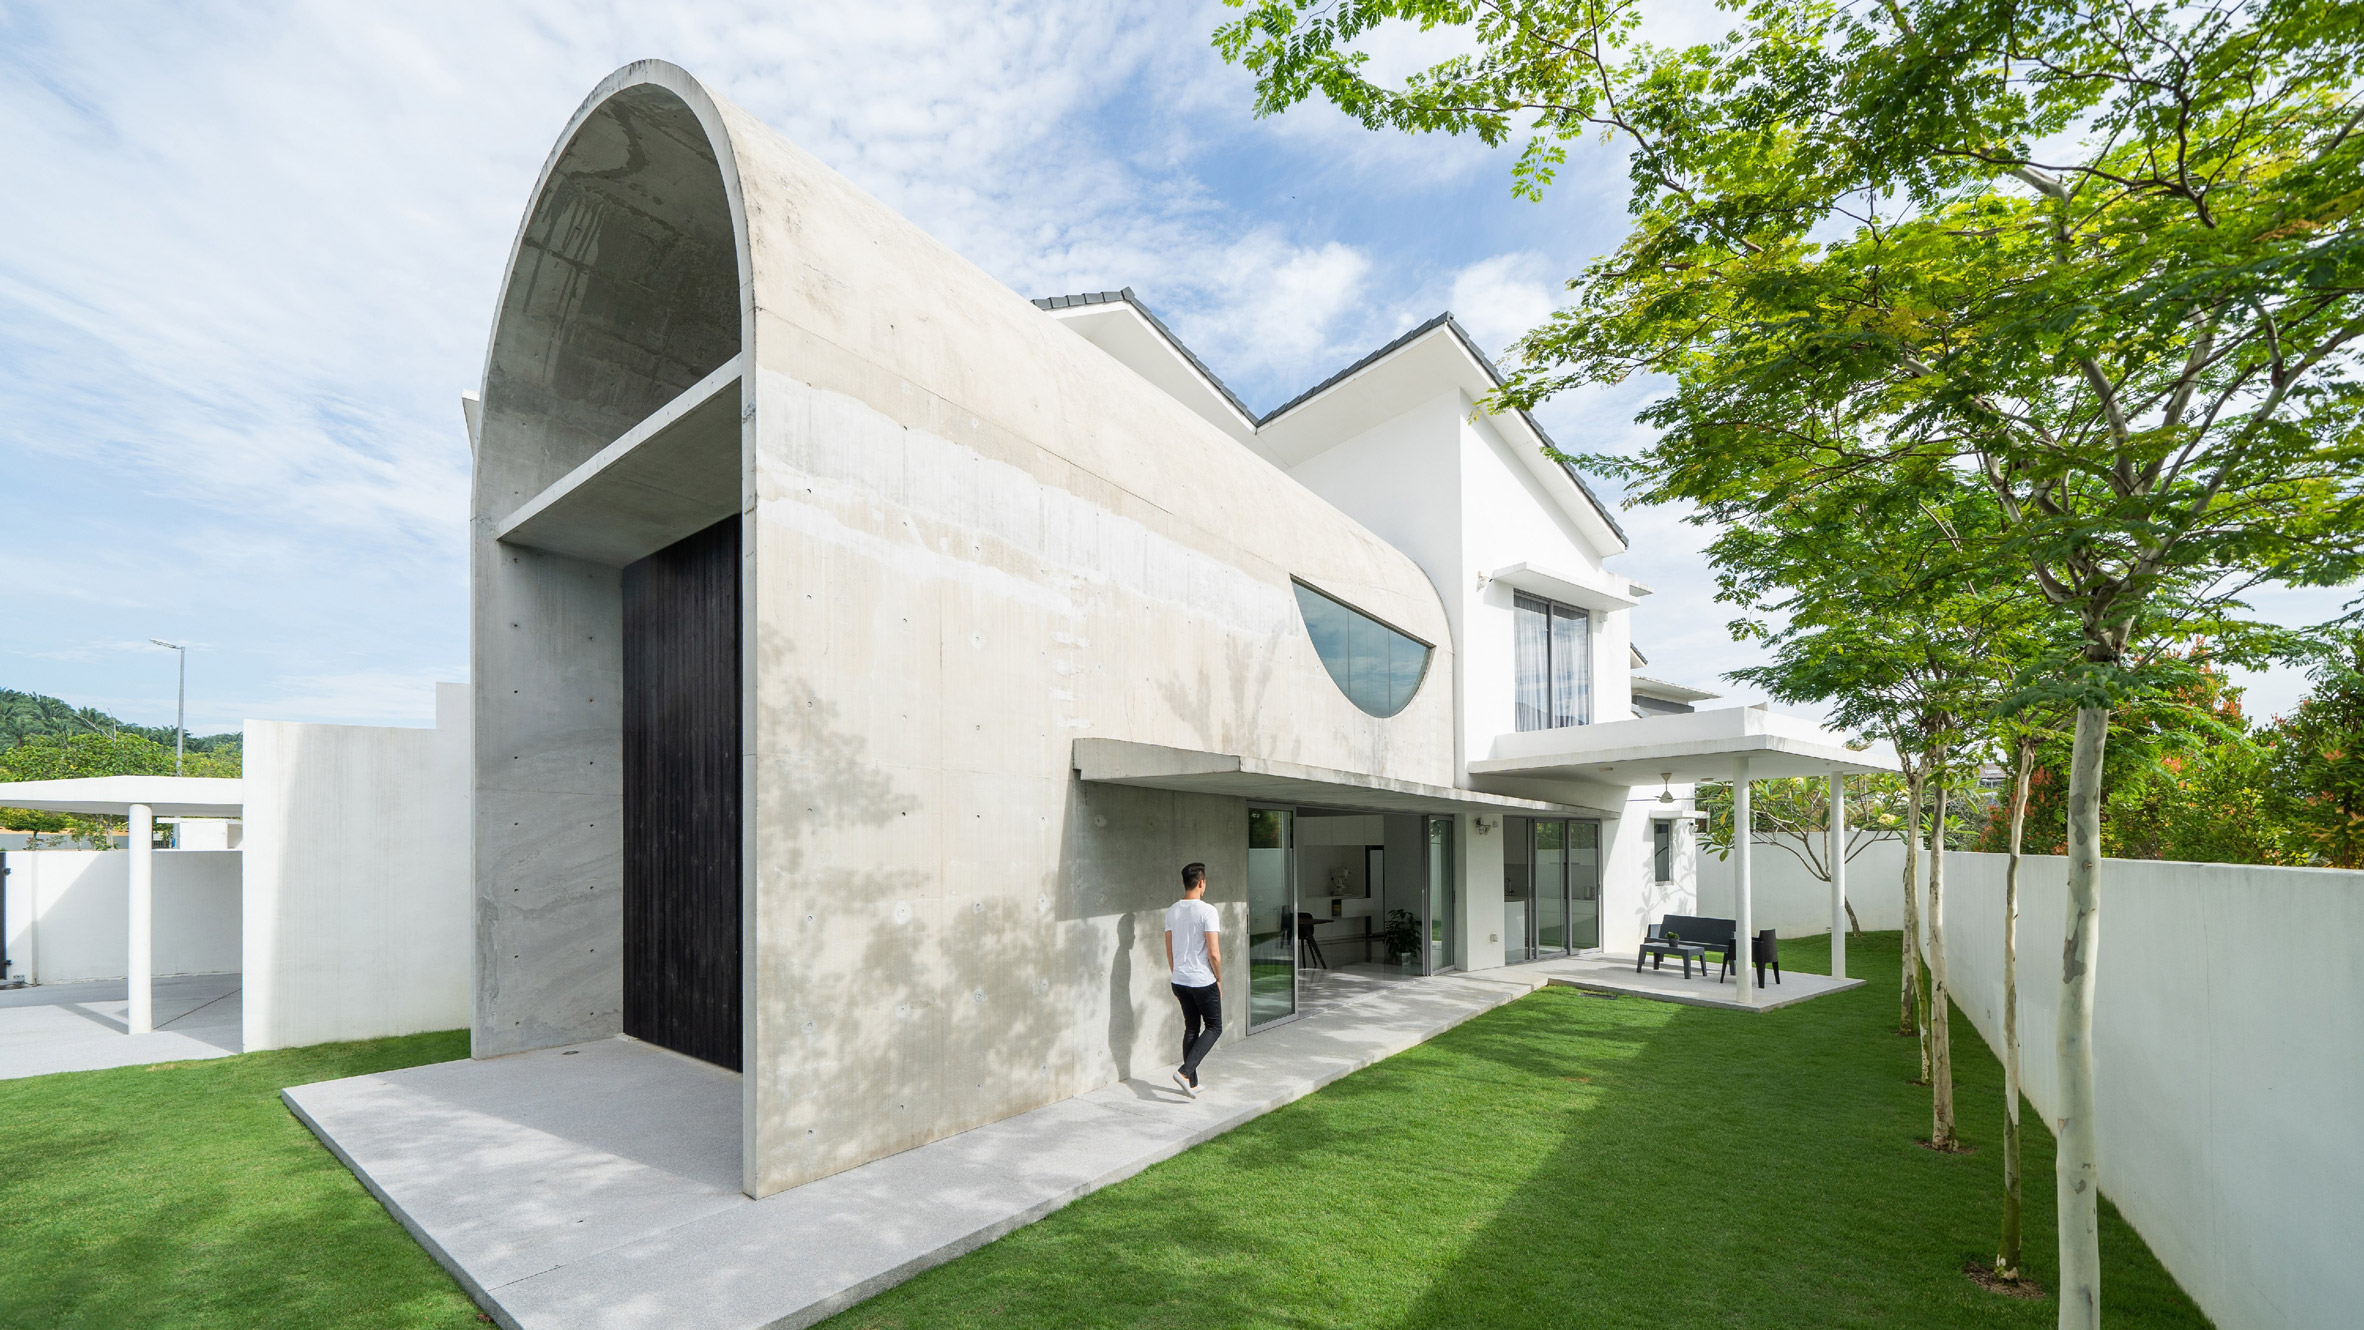 Concrete house with large barrel arch.